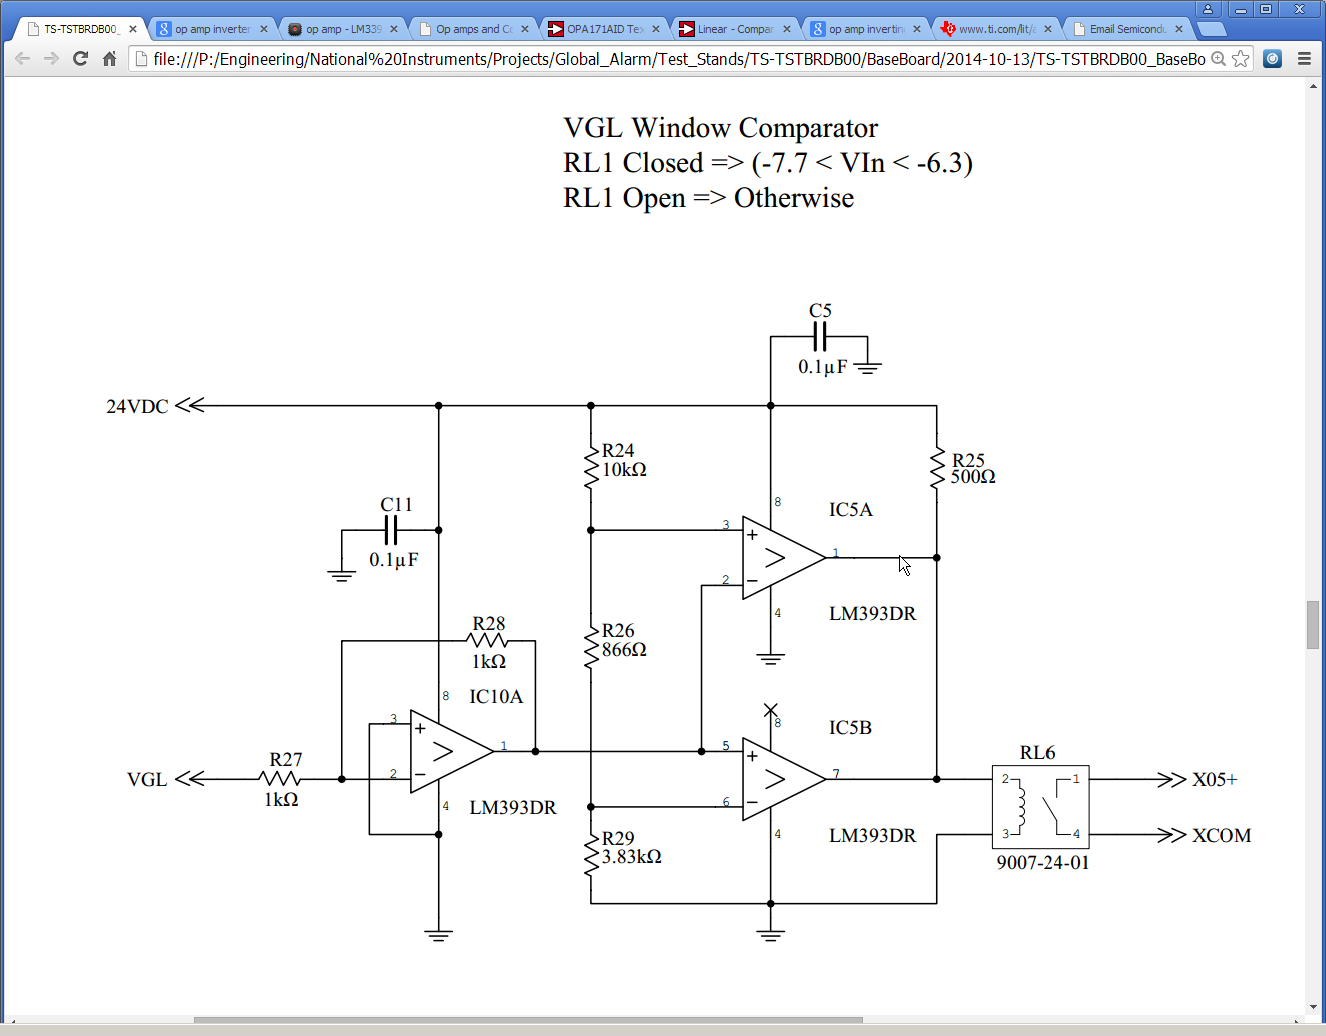 Inverting Op Amp Design Amplifiers Forum Ti E2e Opampinvertingamplifiercircuitpng The Image Above Is My Schematic I Want To Invert Voltage Vglwhich Can Be 77v 63v And Use It Close A Relayrl6 If Within